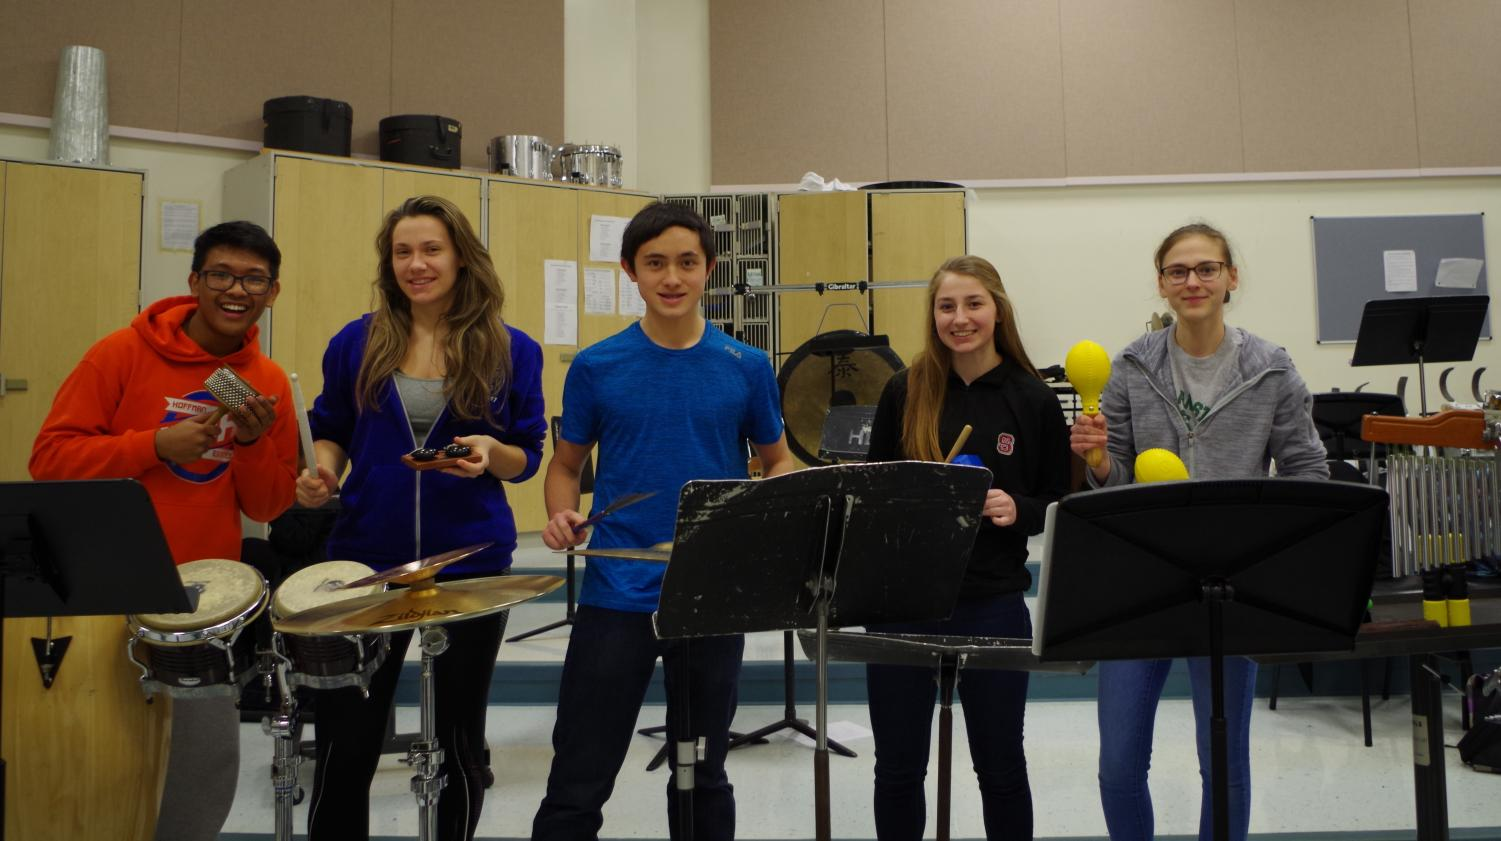 Percussion group photo: (Left-right) John Emiliano, Christina Wood, Brendan Gates, Haley Dellacqua, Amber Dellacqua